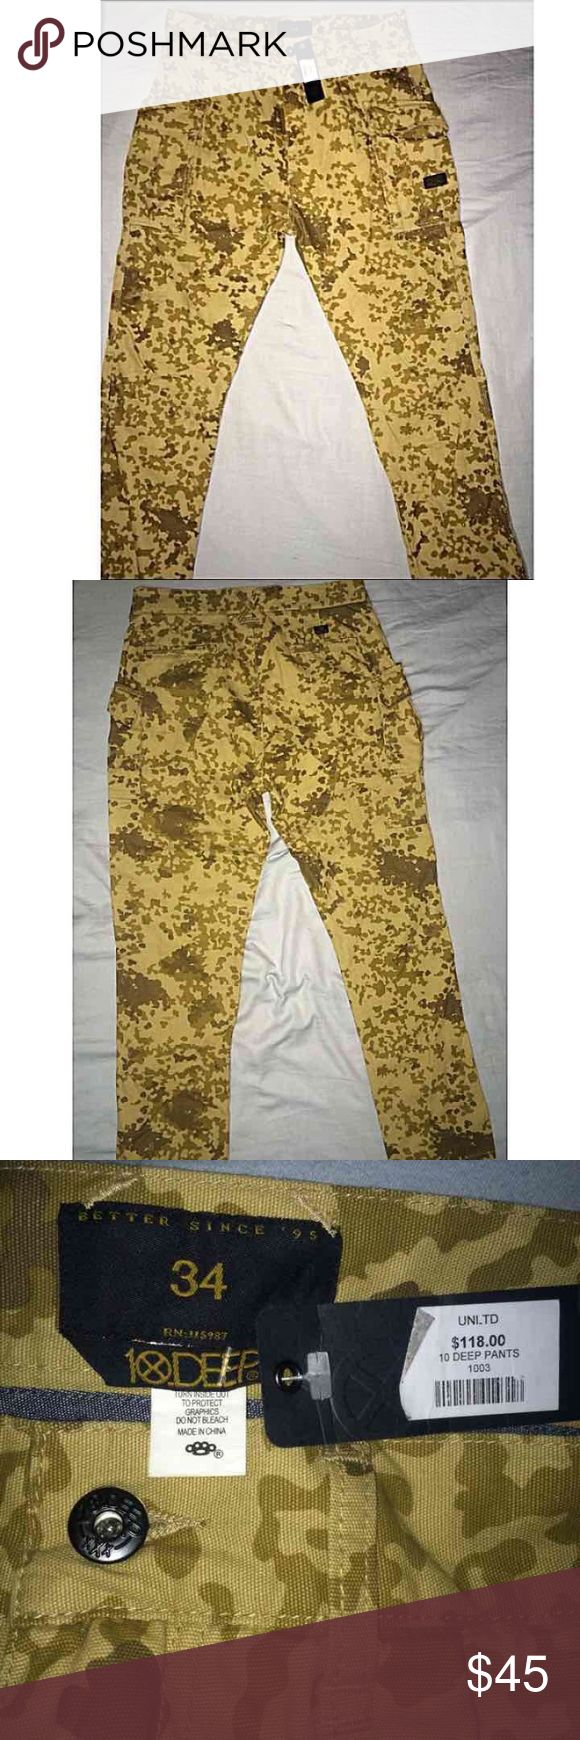 10 Deep Camo Skinny Jeans NWT •10 Deep Camo Skinny Pants NWT •Size 34 •NEVER WORN •Check out my other items for great deals ! (shoes shirts jackets pants etc..) 10.Deep Jeans Skinny